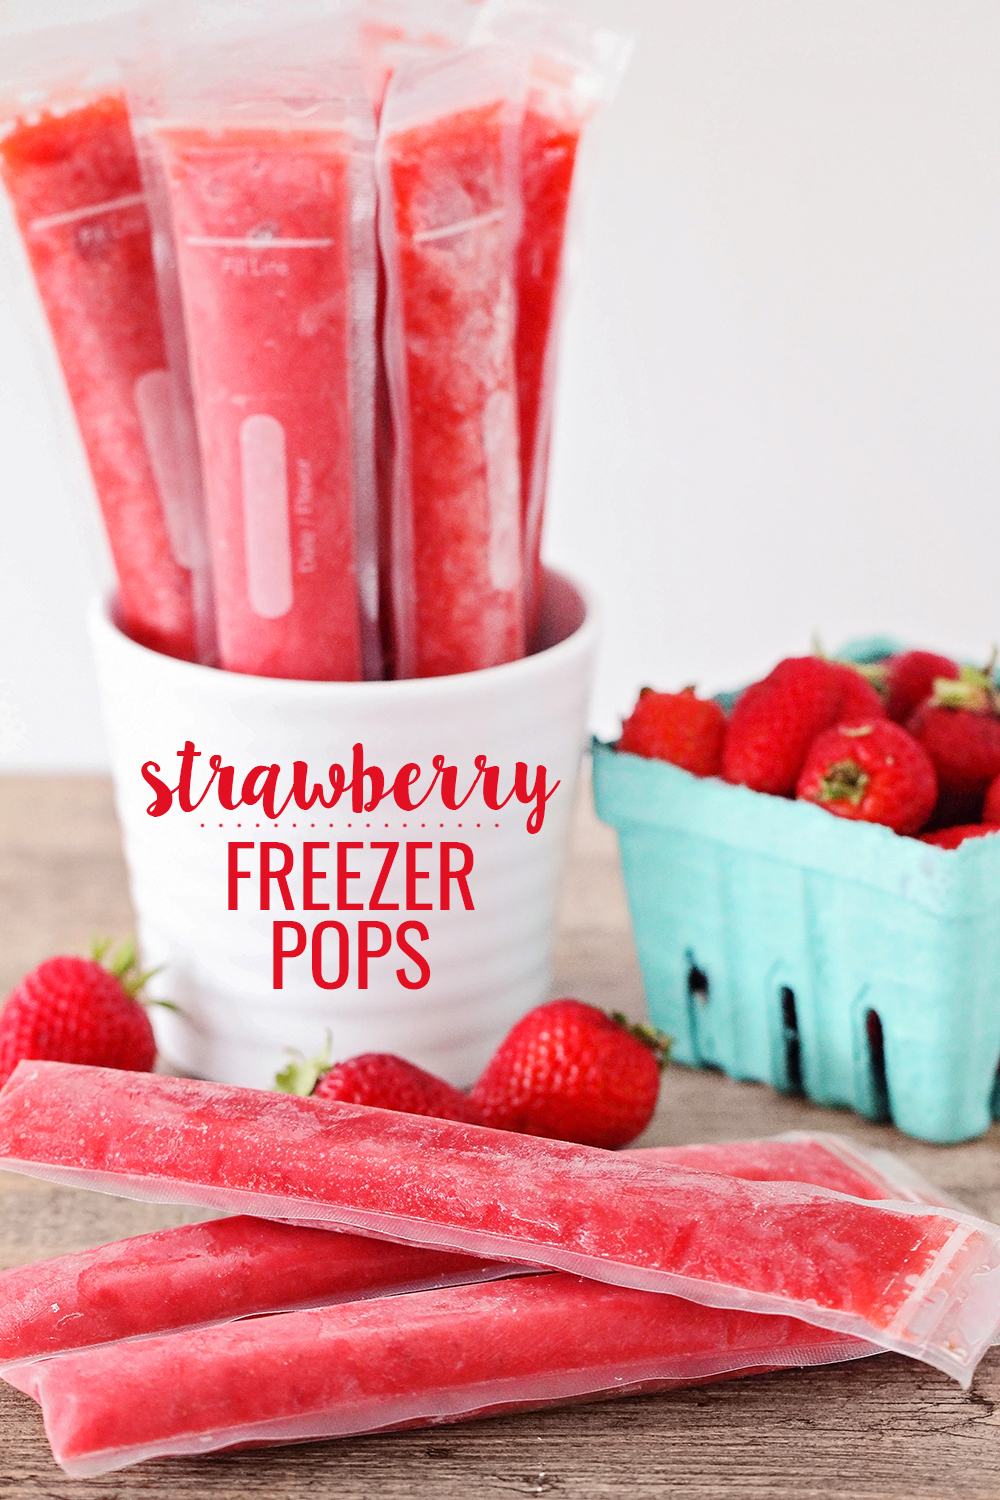 These healthy and delicious strawberry freezer pops have only three ingredients, and are full of strawberry flavor. They're so simple to make, and the kids will love them!